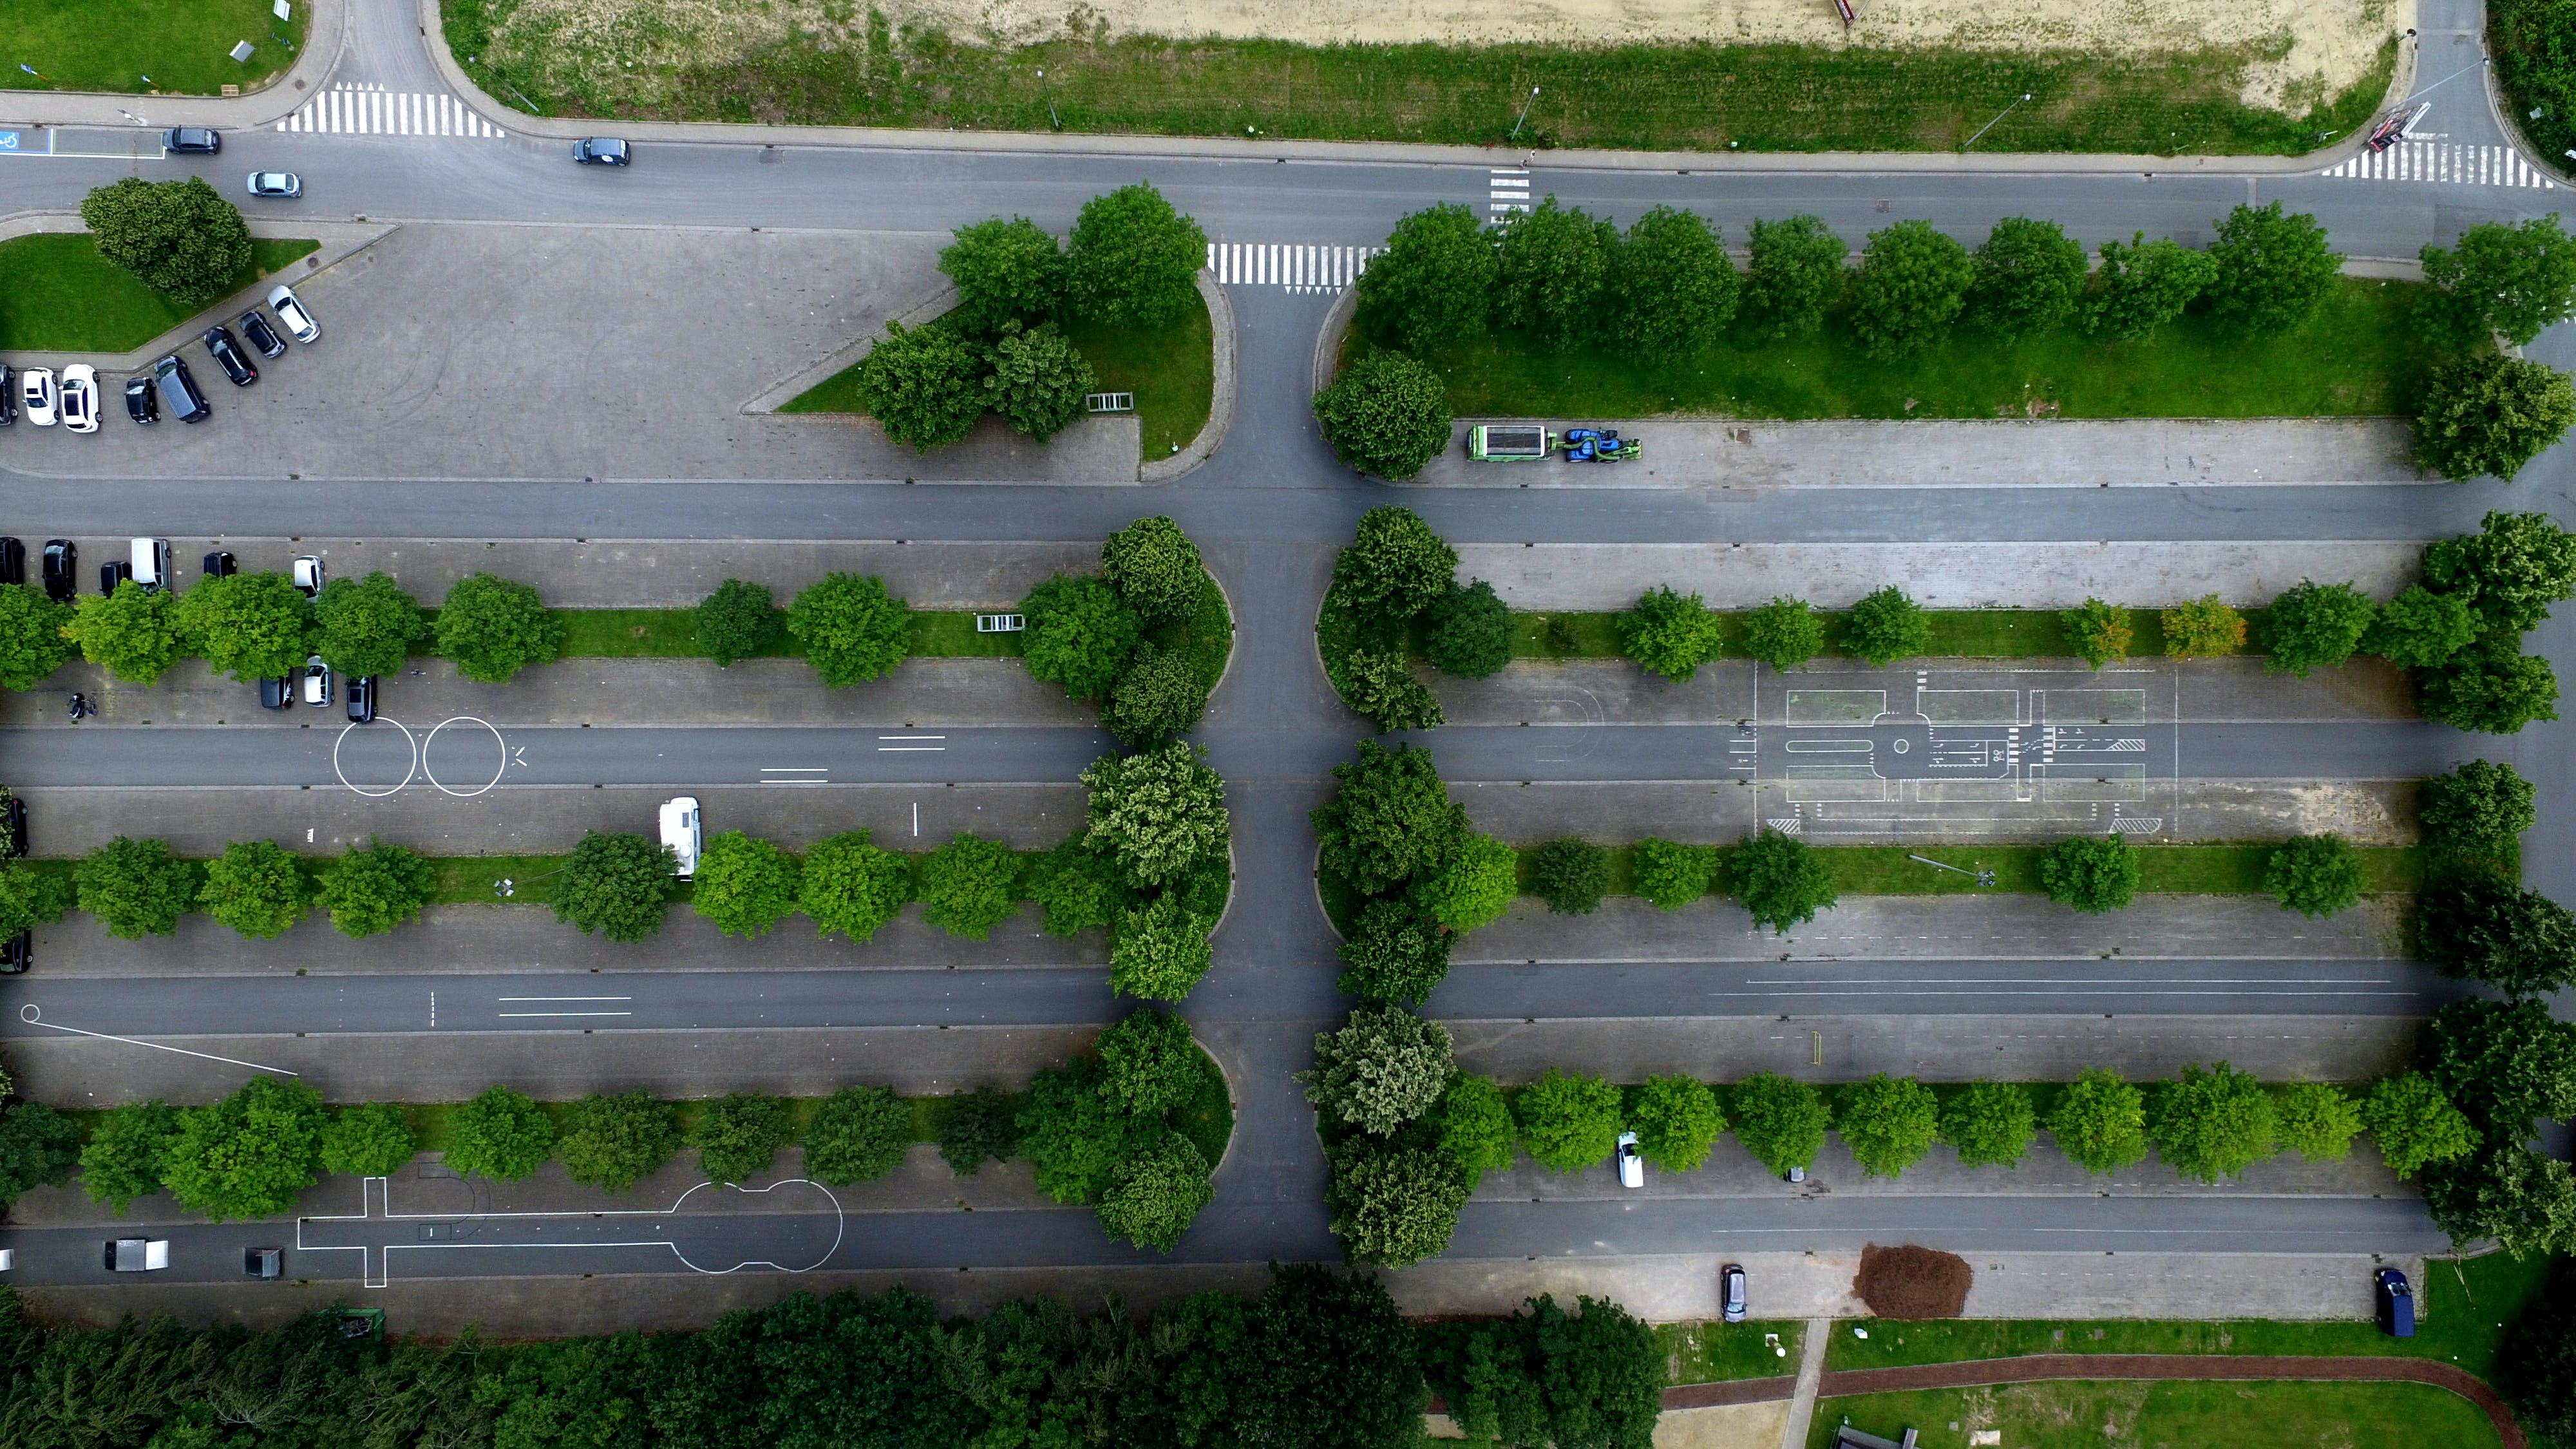 Aerial Photography of Parking Lot With Trees